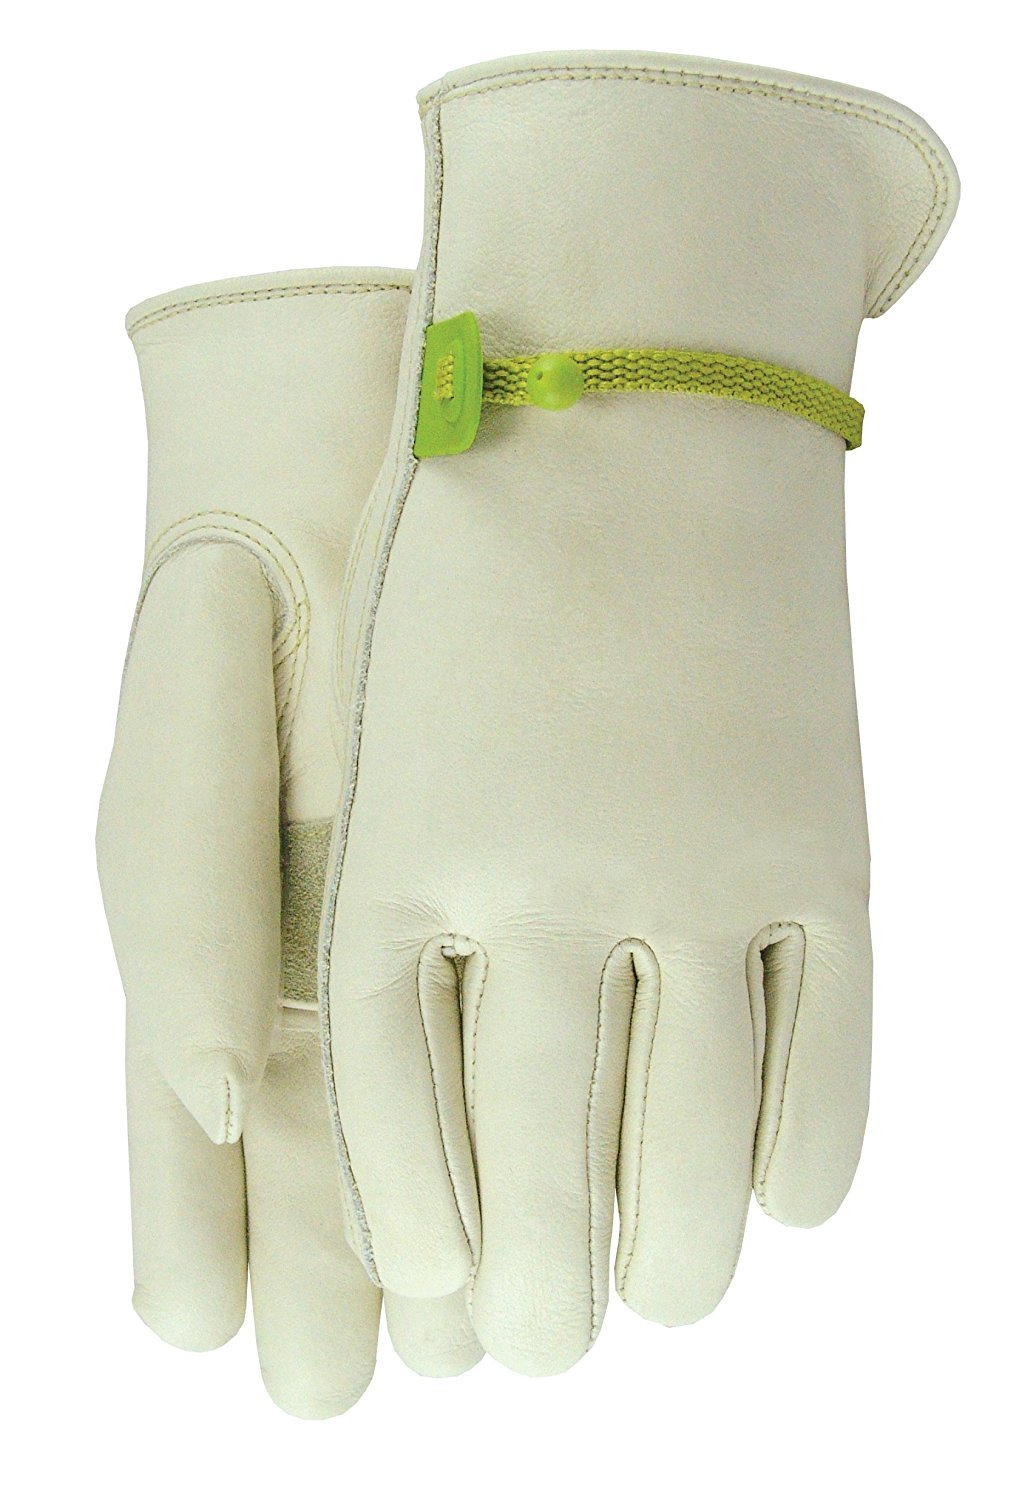 Meanch Cowhide Leather Garden Gloves with Ball and Tape Cinch at Wrist